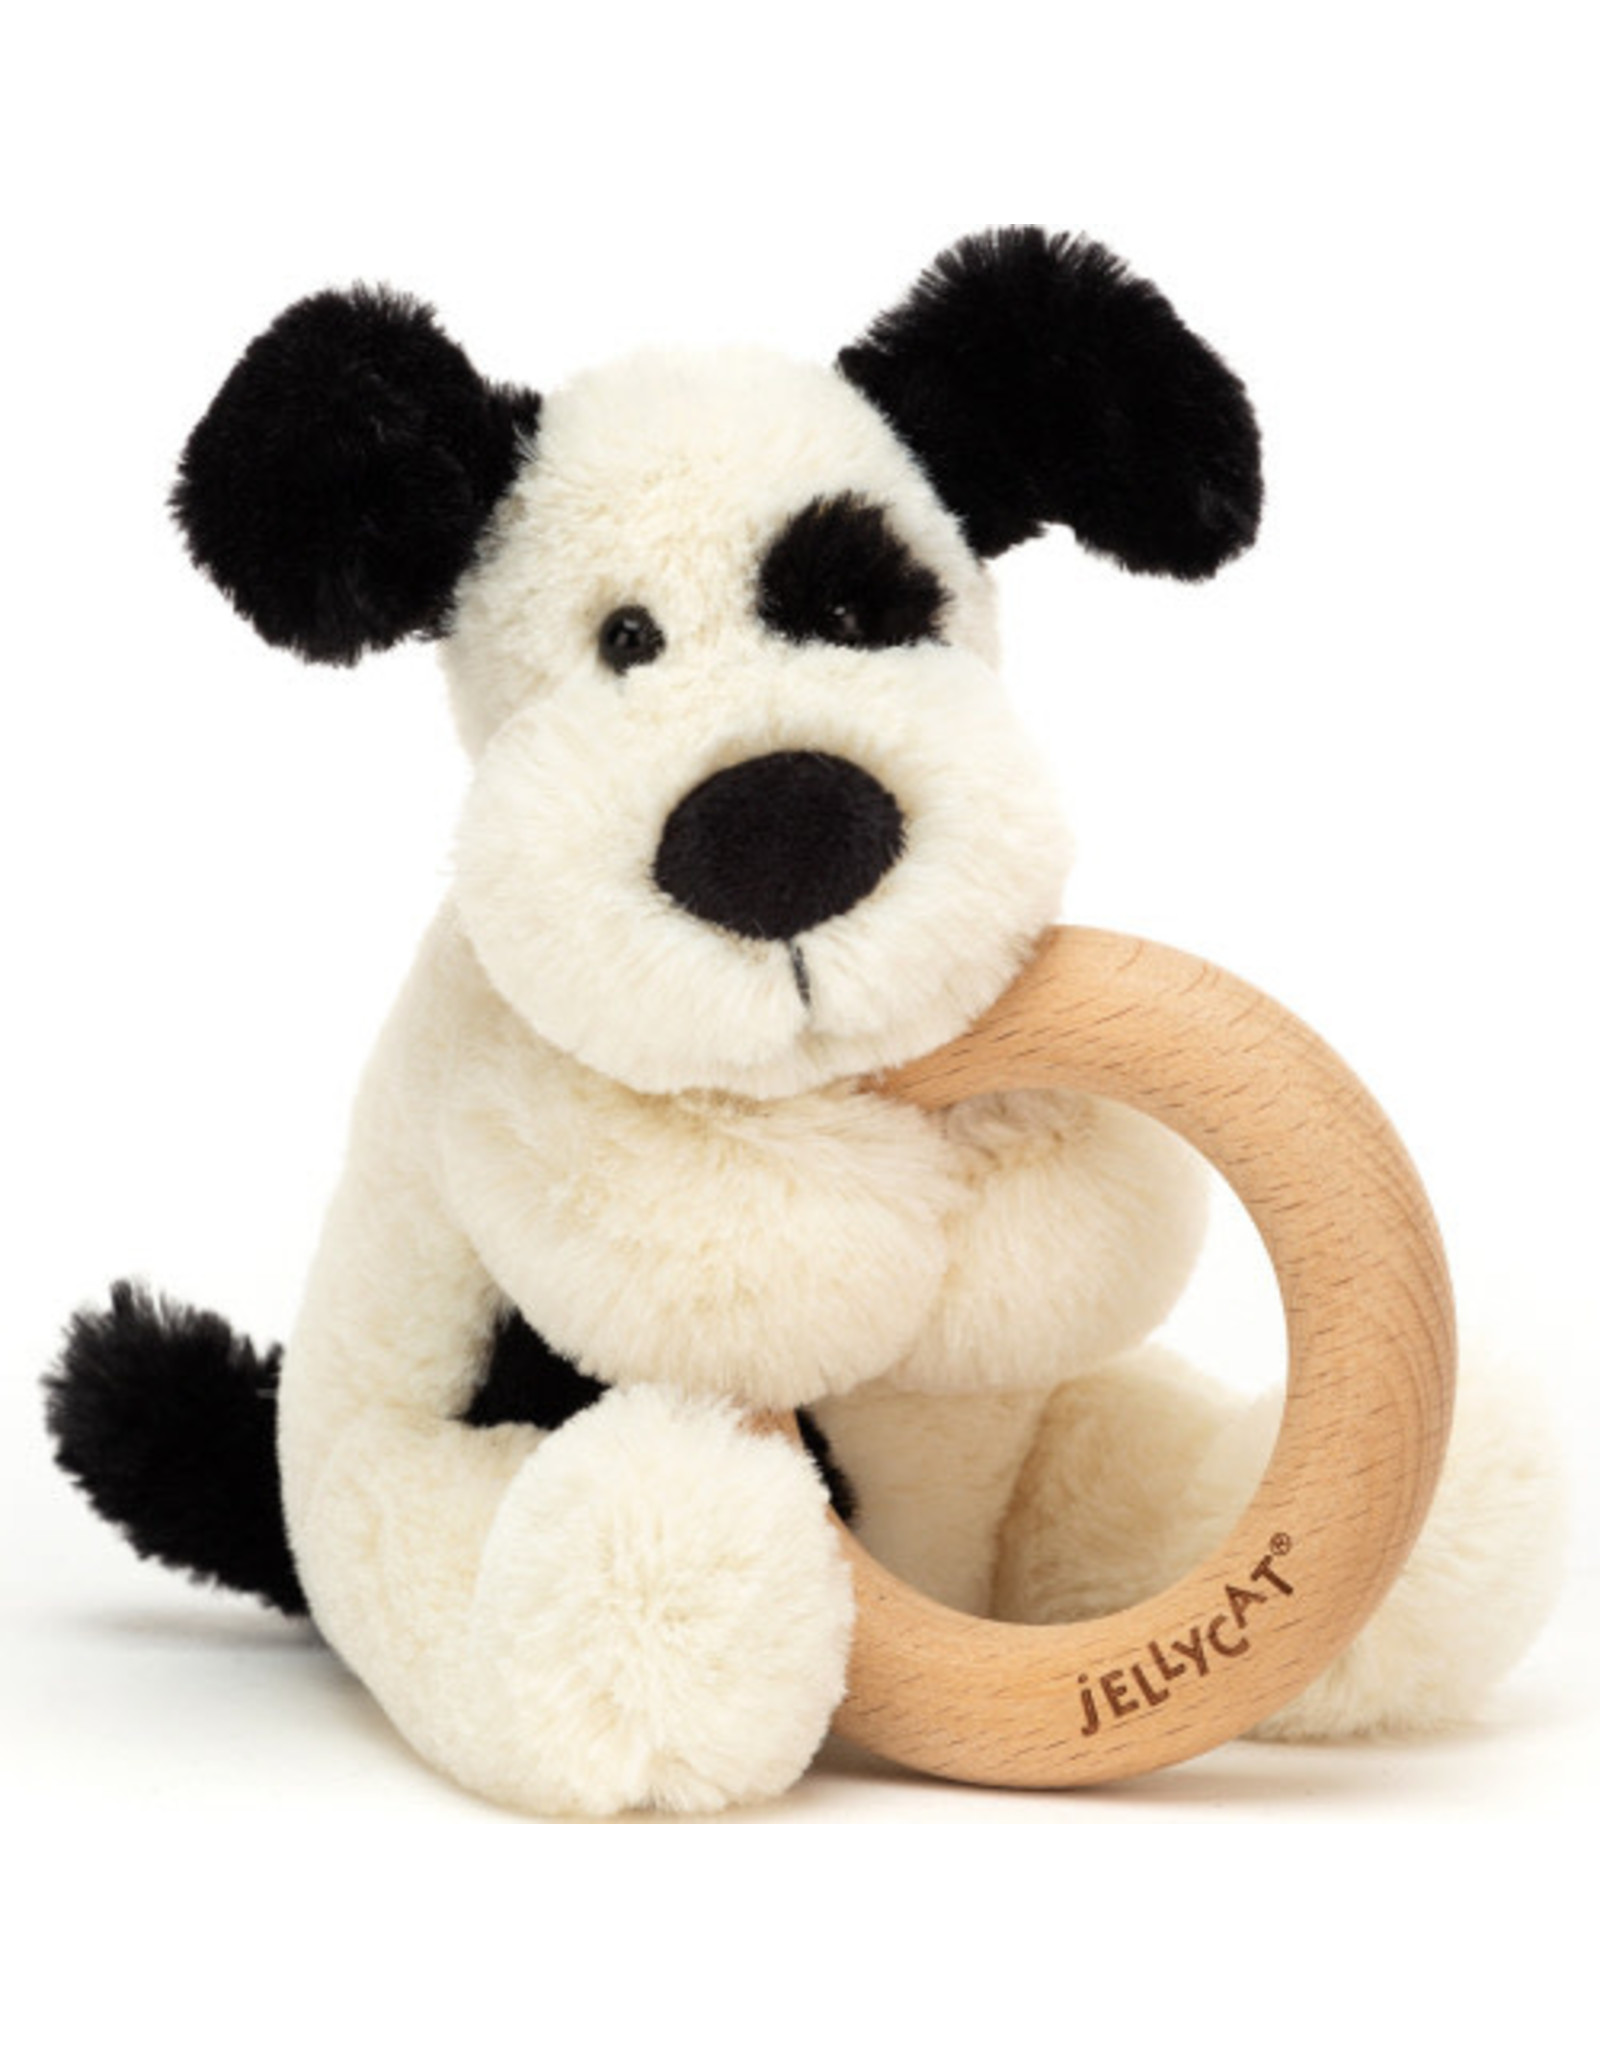 JELLYCAT BASHFULL CREAM AND BLACK PUPPY WOODEN RING